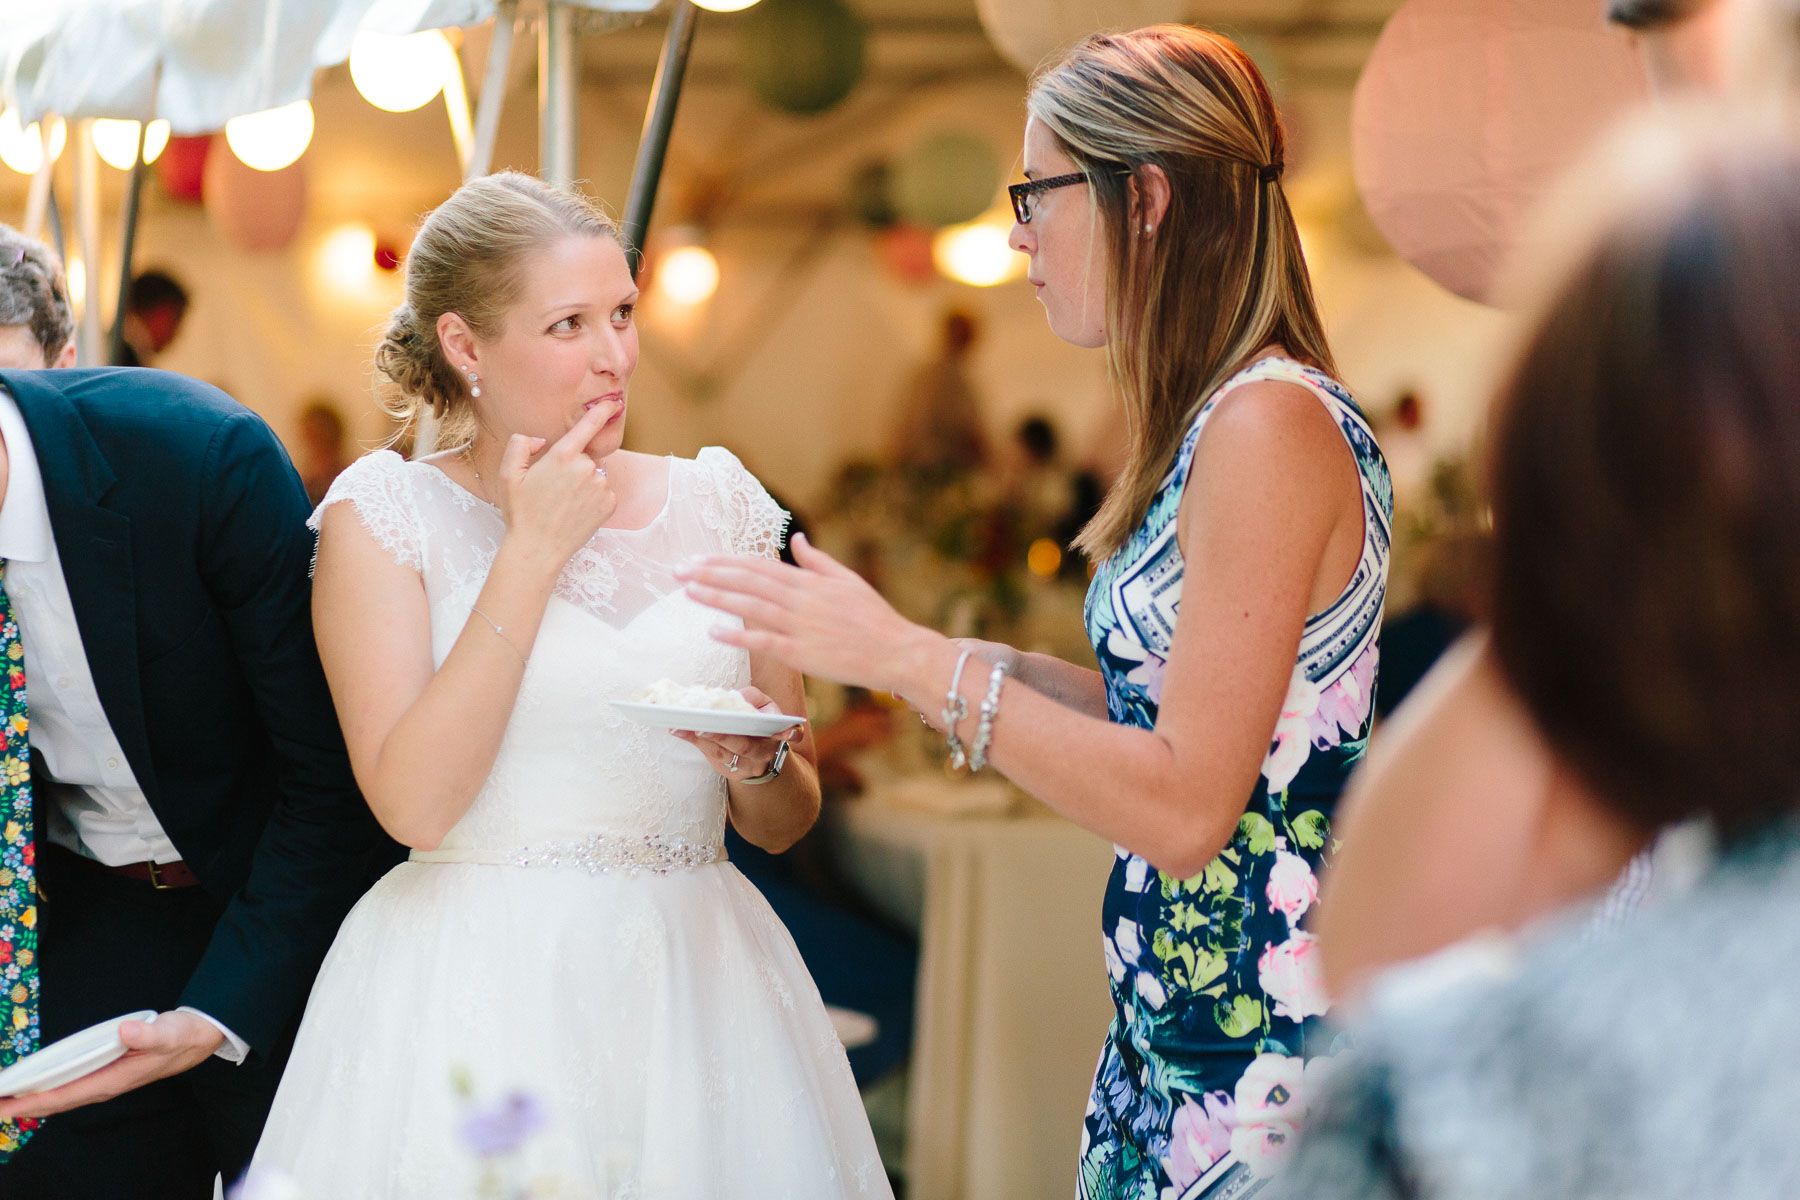 Bride licking fingers and holding pie while talking to guest in this rural family farm wedding.